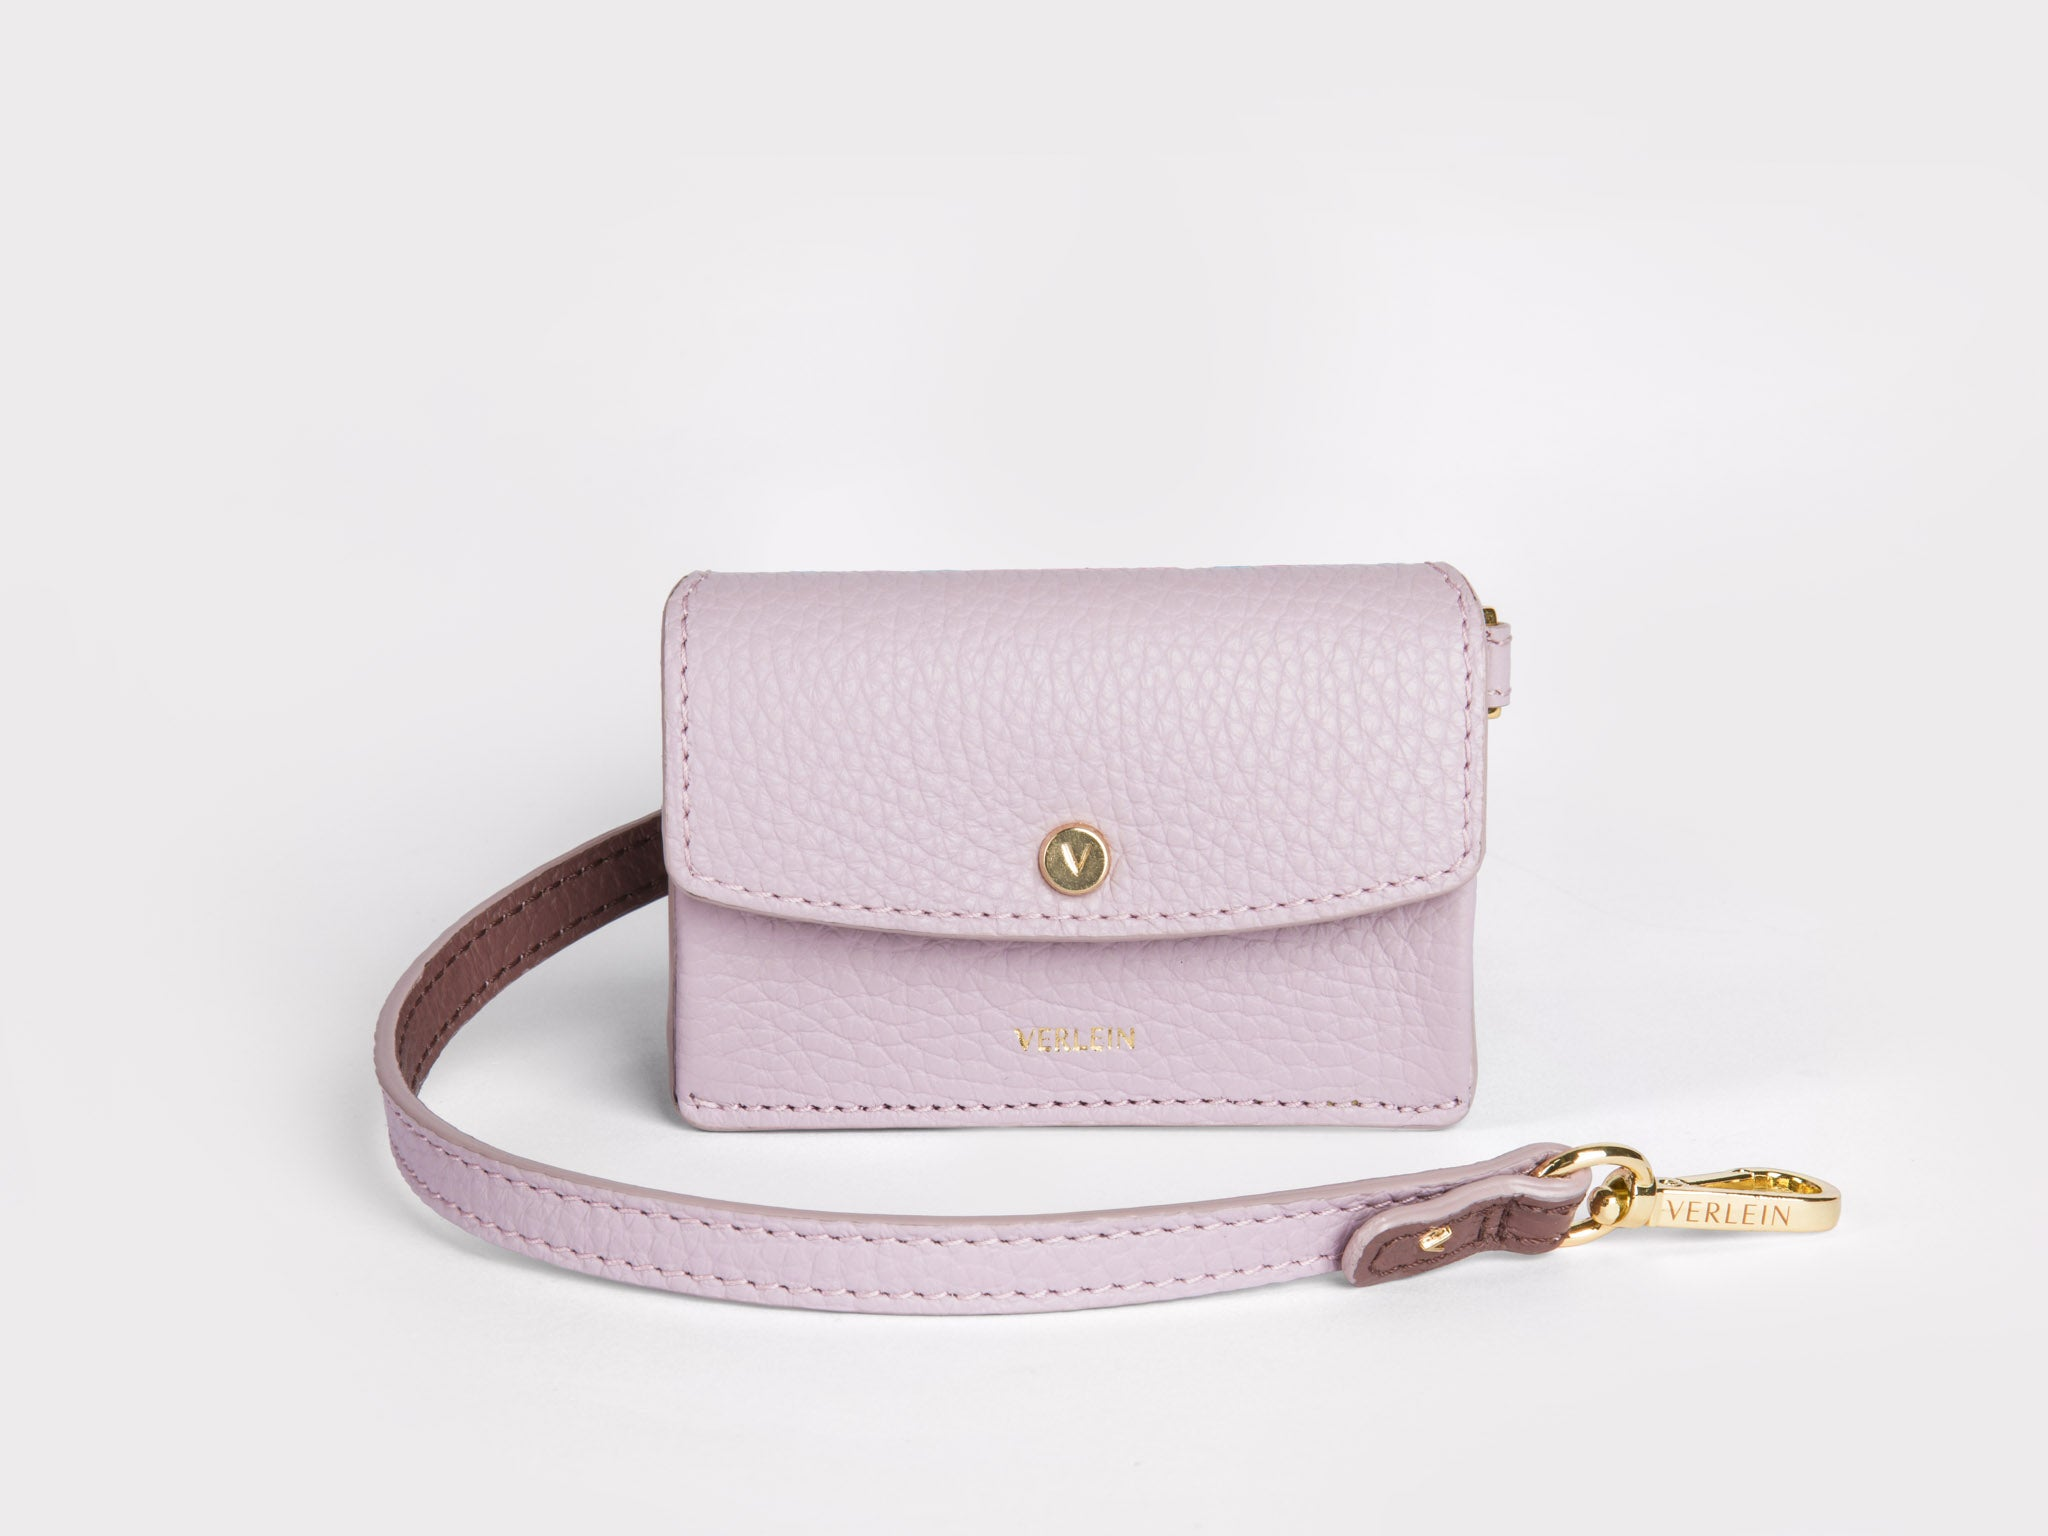 Ines Cinch Coinpurse With Strap, in Lavender Haze | Verlein